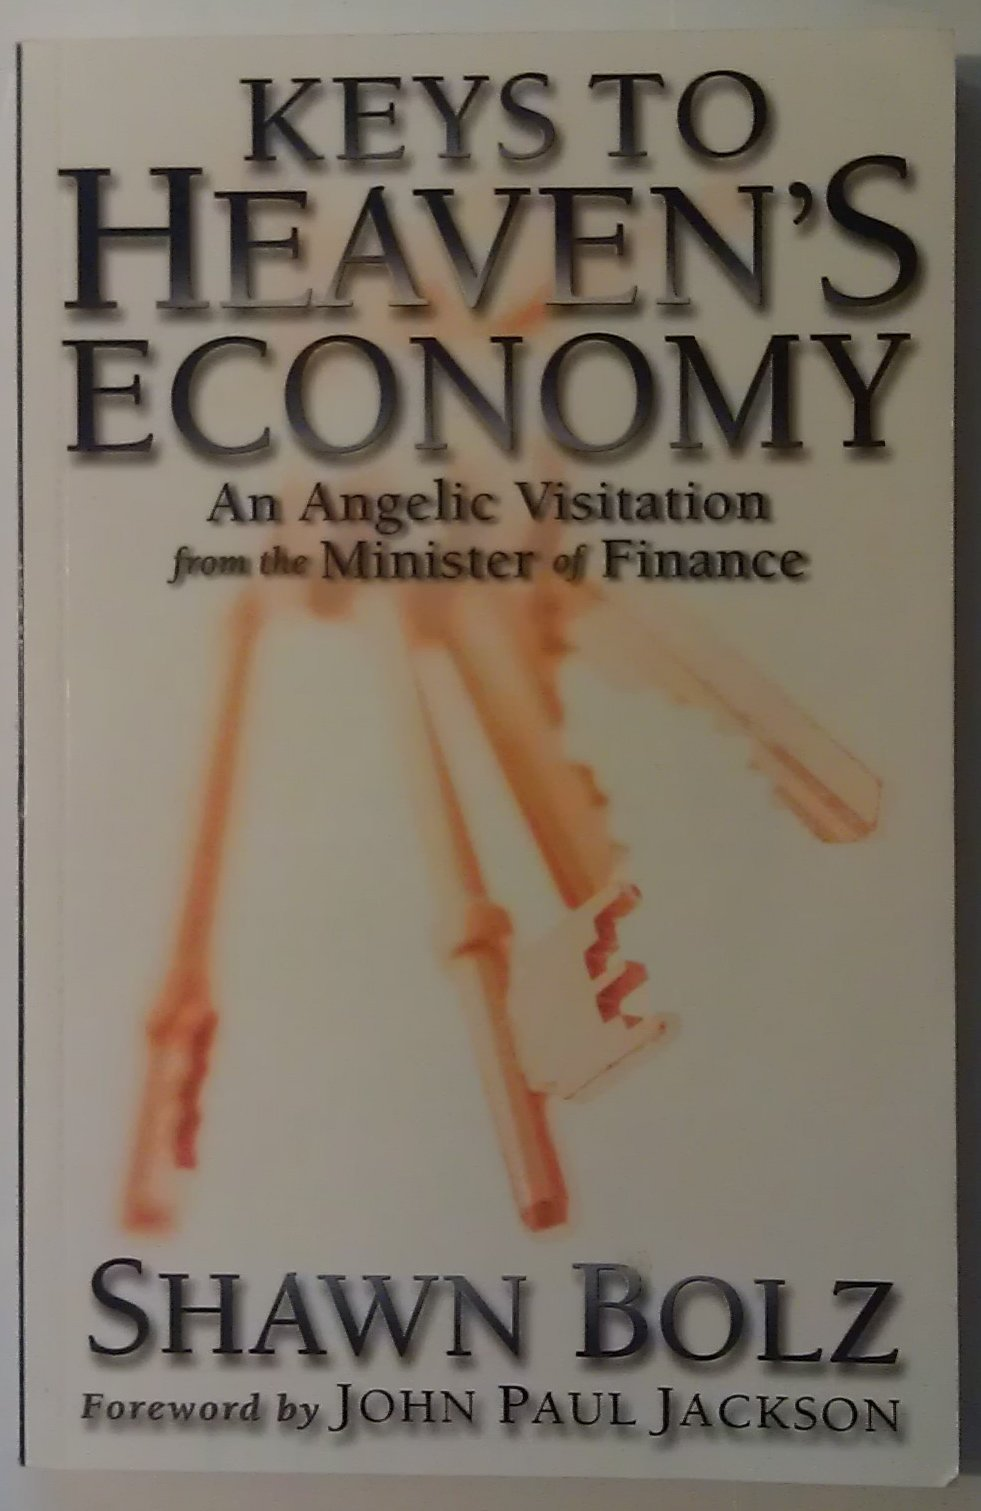 Amazon.in: Buy Keys to Heaven's Economy: An Angelic Visitation from the  Minister of Finance Book Online at Low Prices in India | Keys to Heaven's  Economy: ...